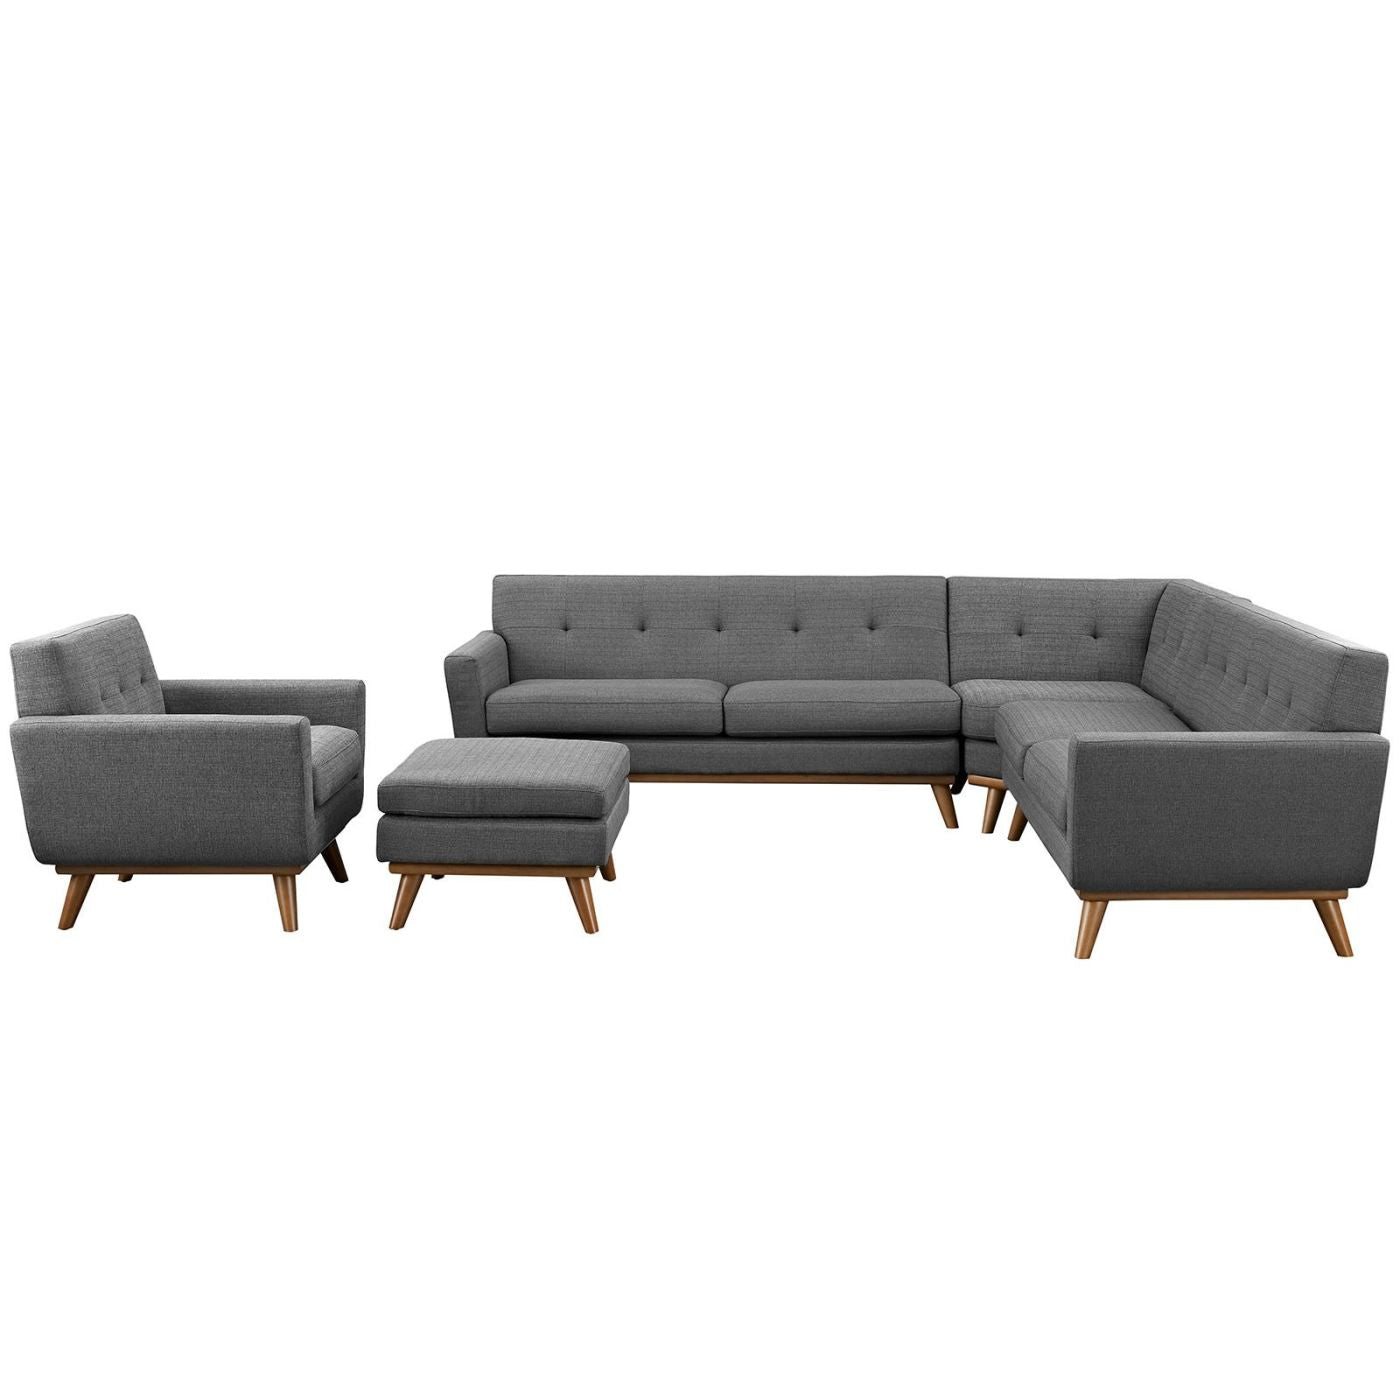 Modway Living Room Sets on sale. EEI-2186-DOR-SET Engage 5 Piece Sectional  Sofa only Only $2,218.55 at Contemporary Furniture Warehouse